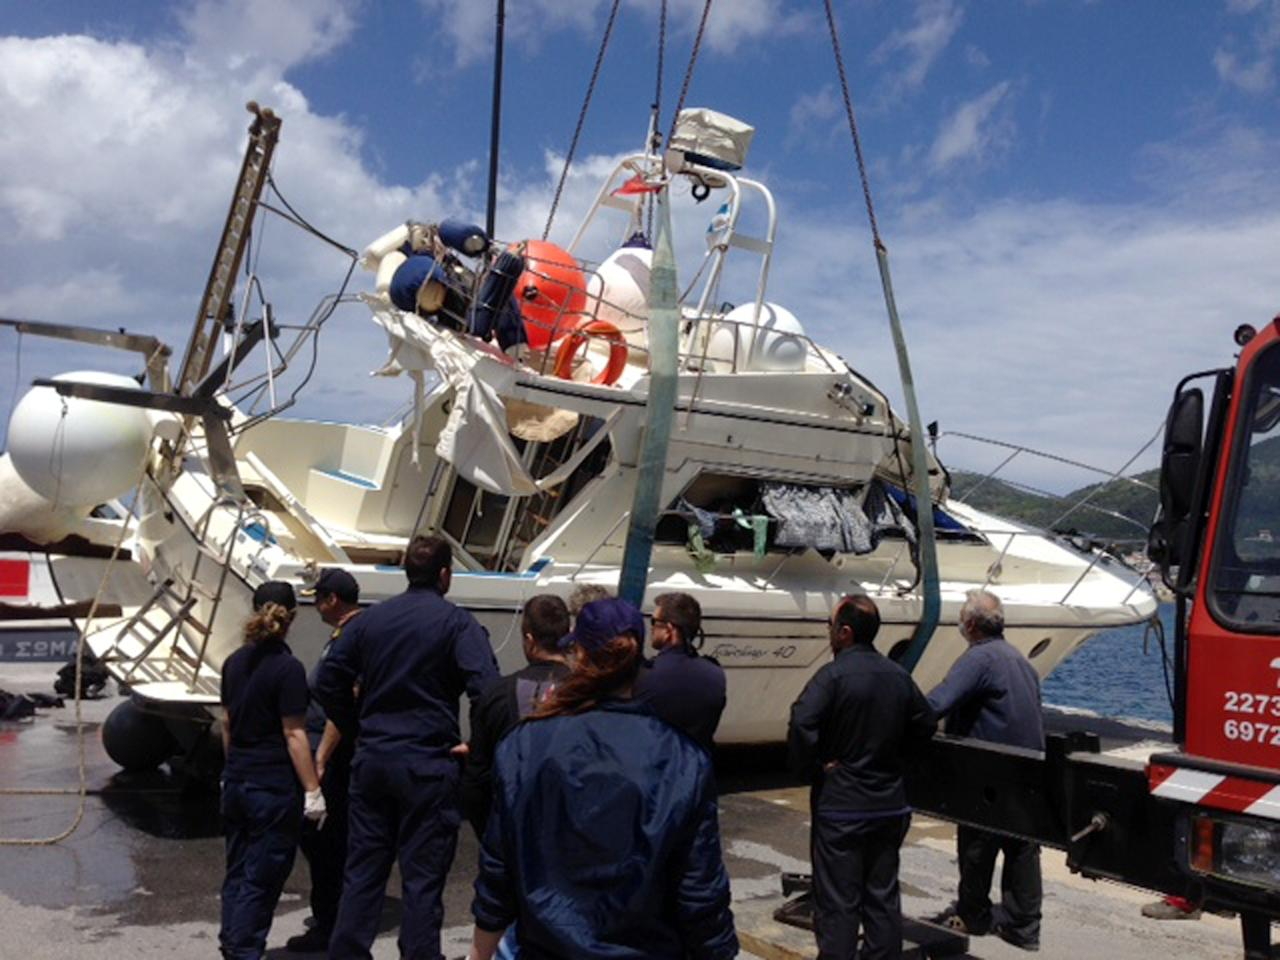 Coast guard officers prepare to tow a yacht that was used to carry immigrants that overturned, at the port of Vathy on the Greek island of Samos, Greece, on Monday, May 5, 2014. At least 22 people drowned including four children, in the incident in the eastern Aegean Sea, while 36 were rescued and others remain missing. (AP Photo/SamosTimes.gr)